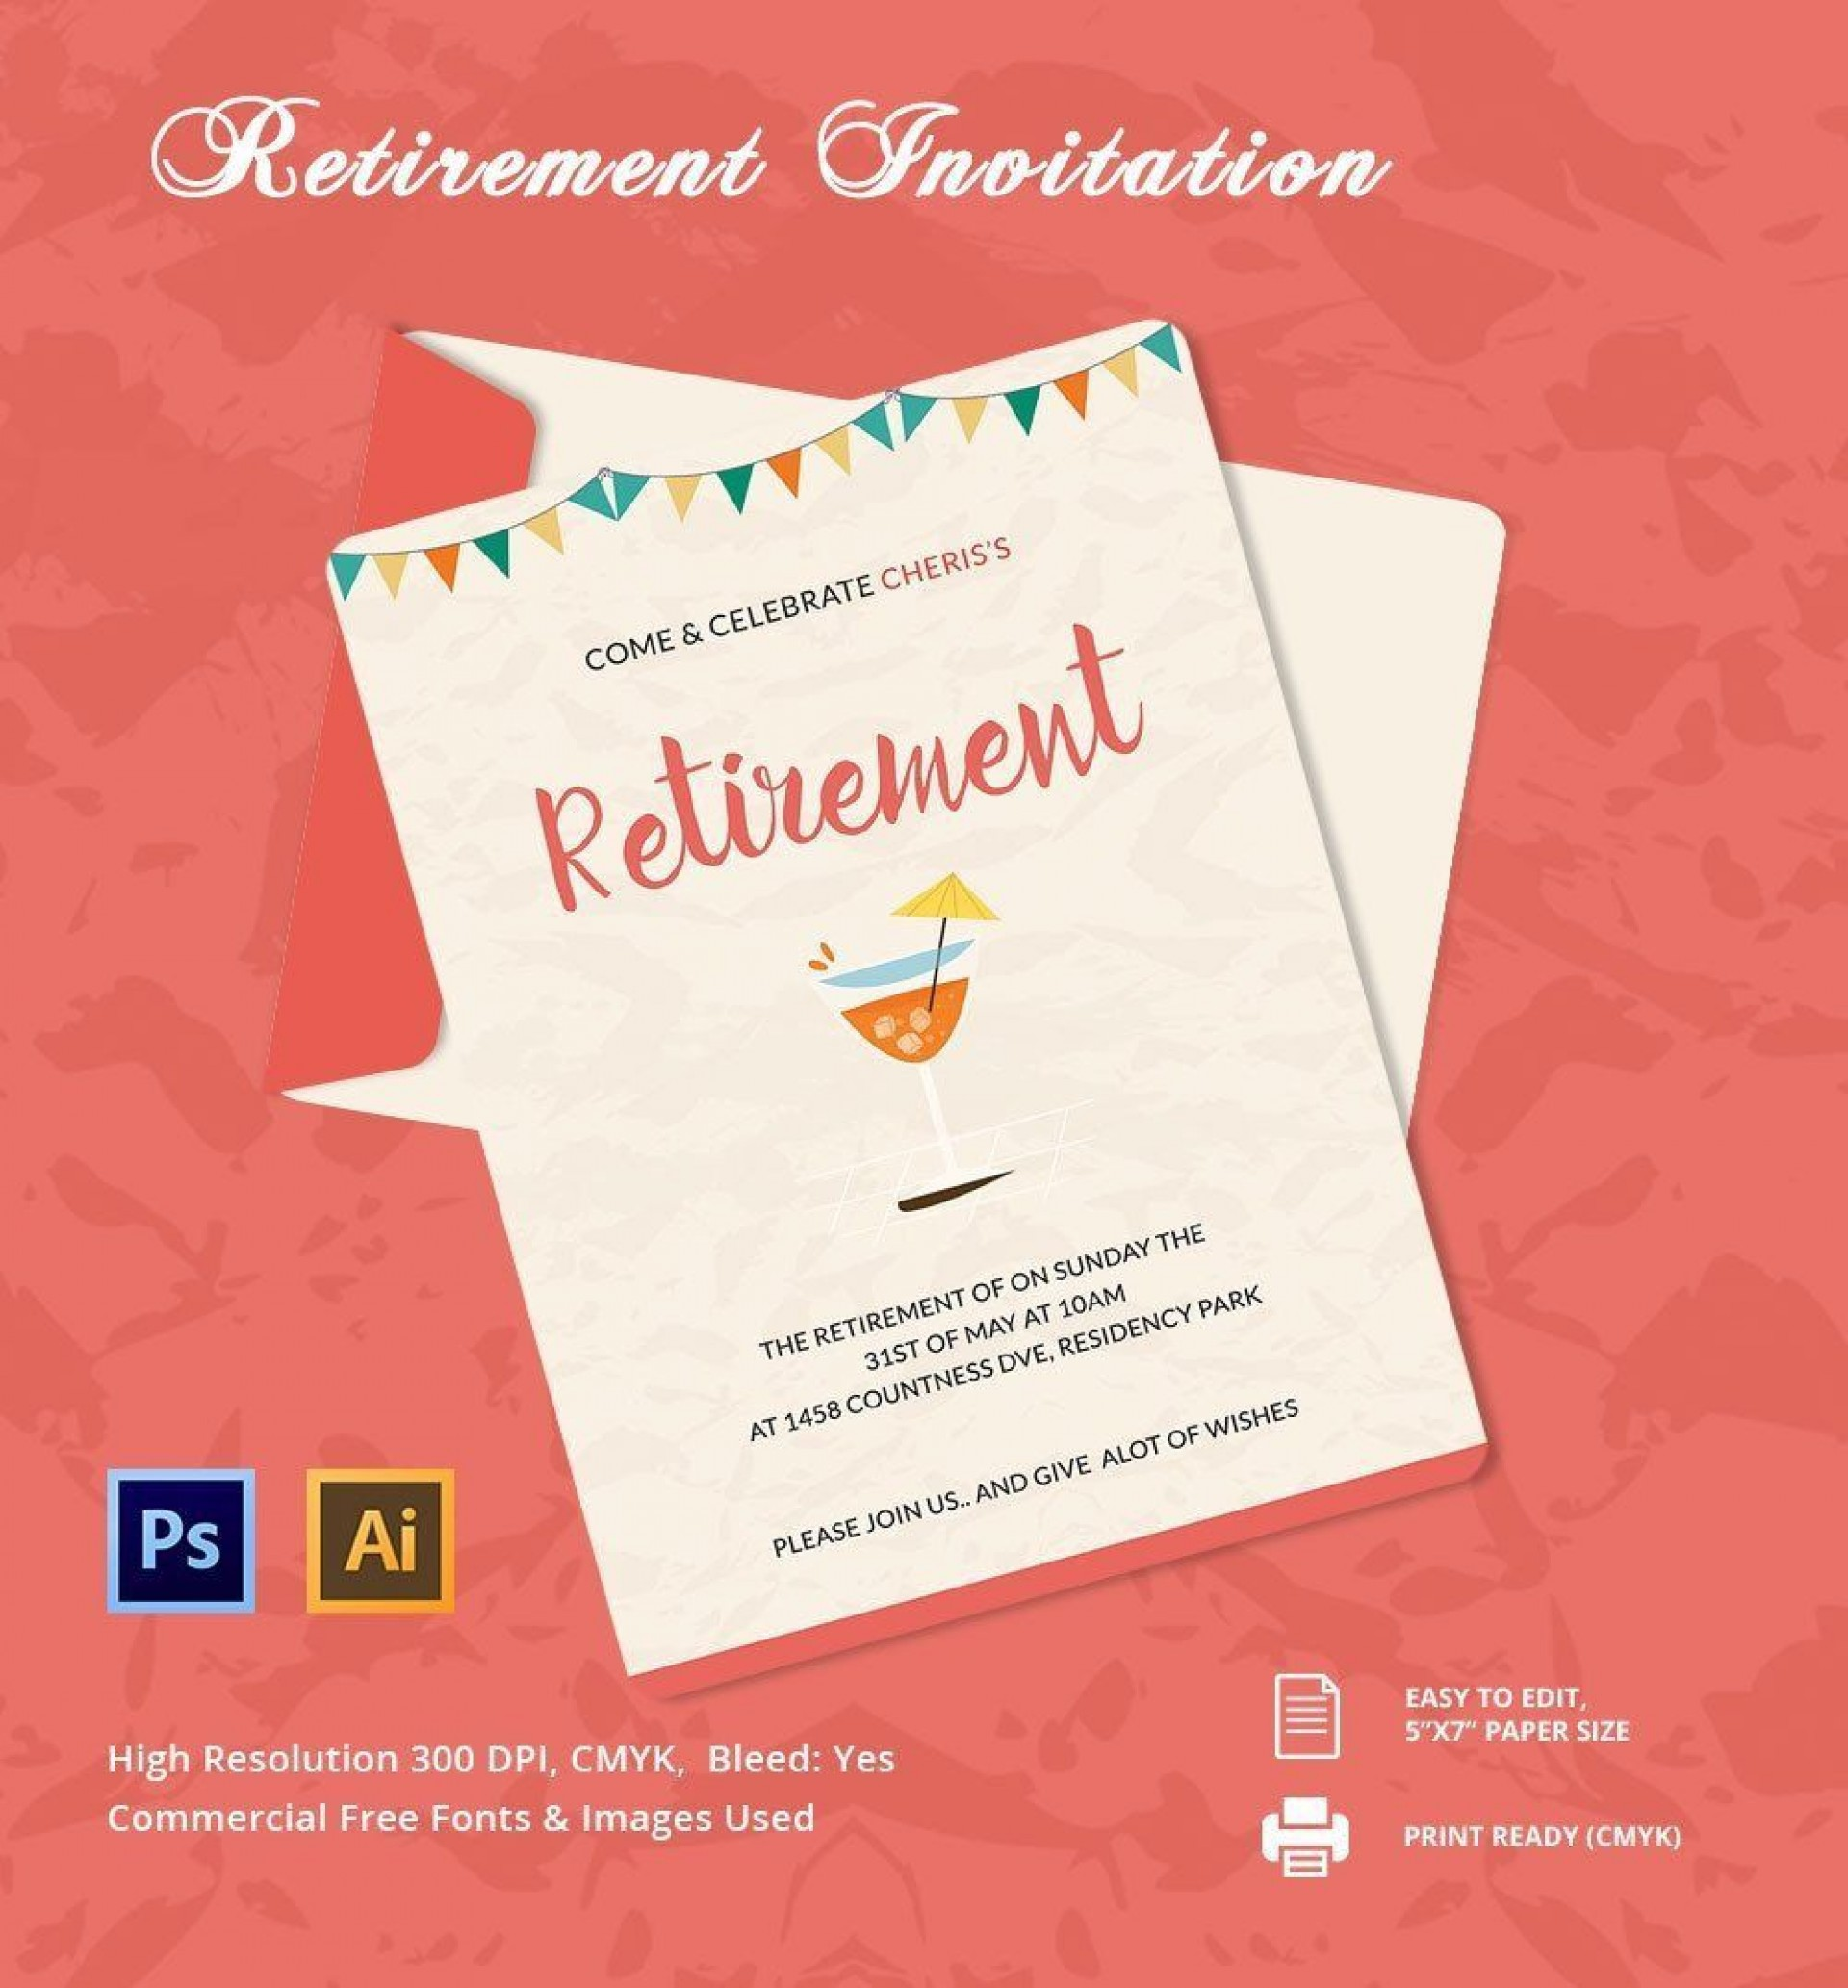 000 Amazing Retirement Party Invitation Template Free Inspiration  M Word1920